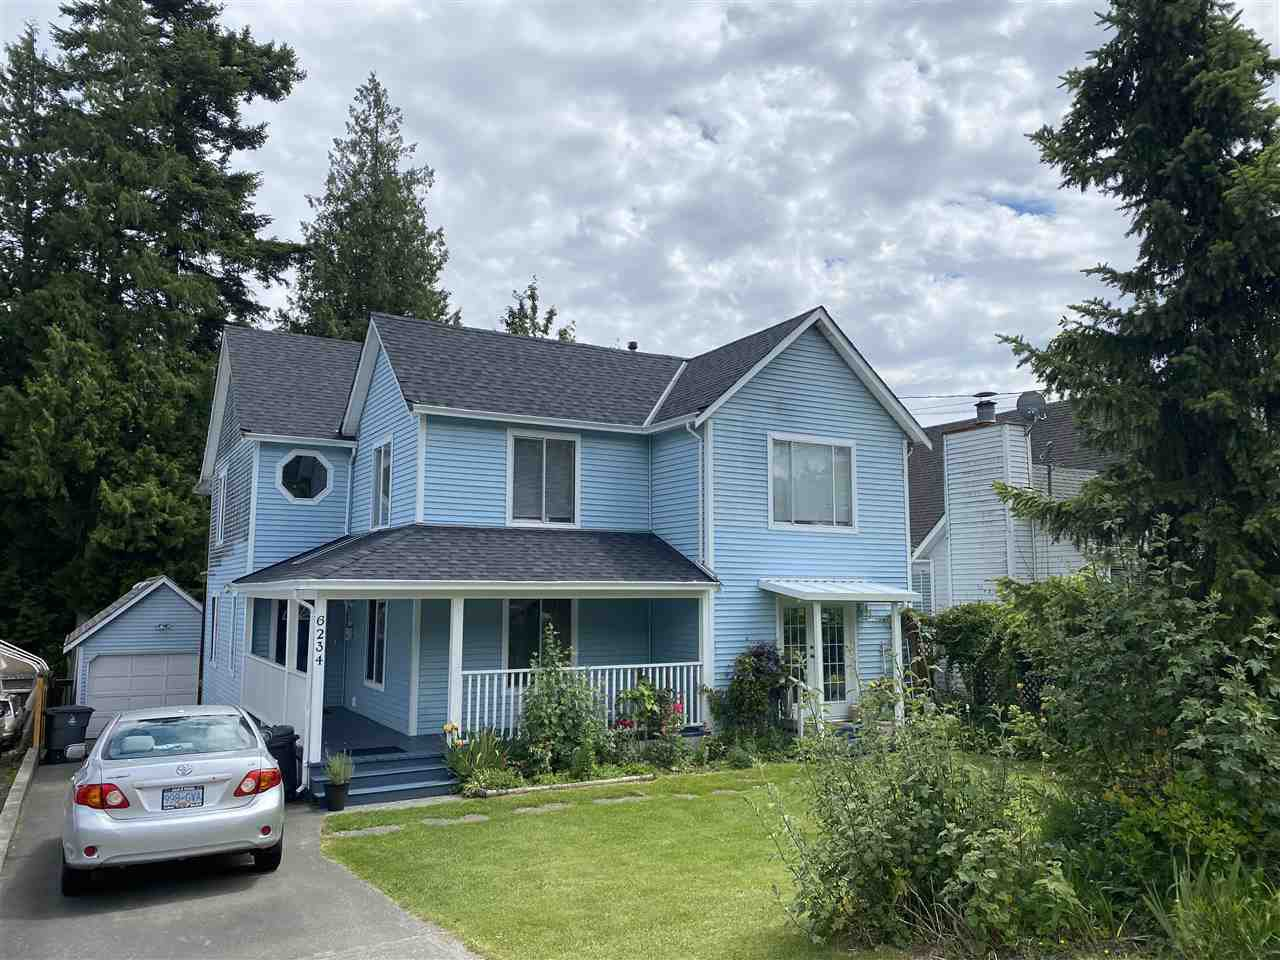 Main Photo: 6234 134 STREET in Surrey: Panorama Ridge House for sale : MLS®# R2464718